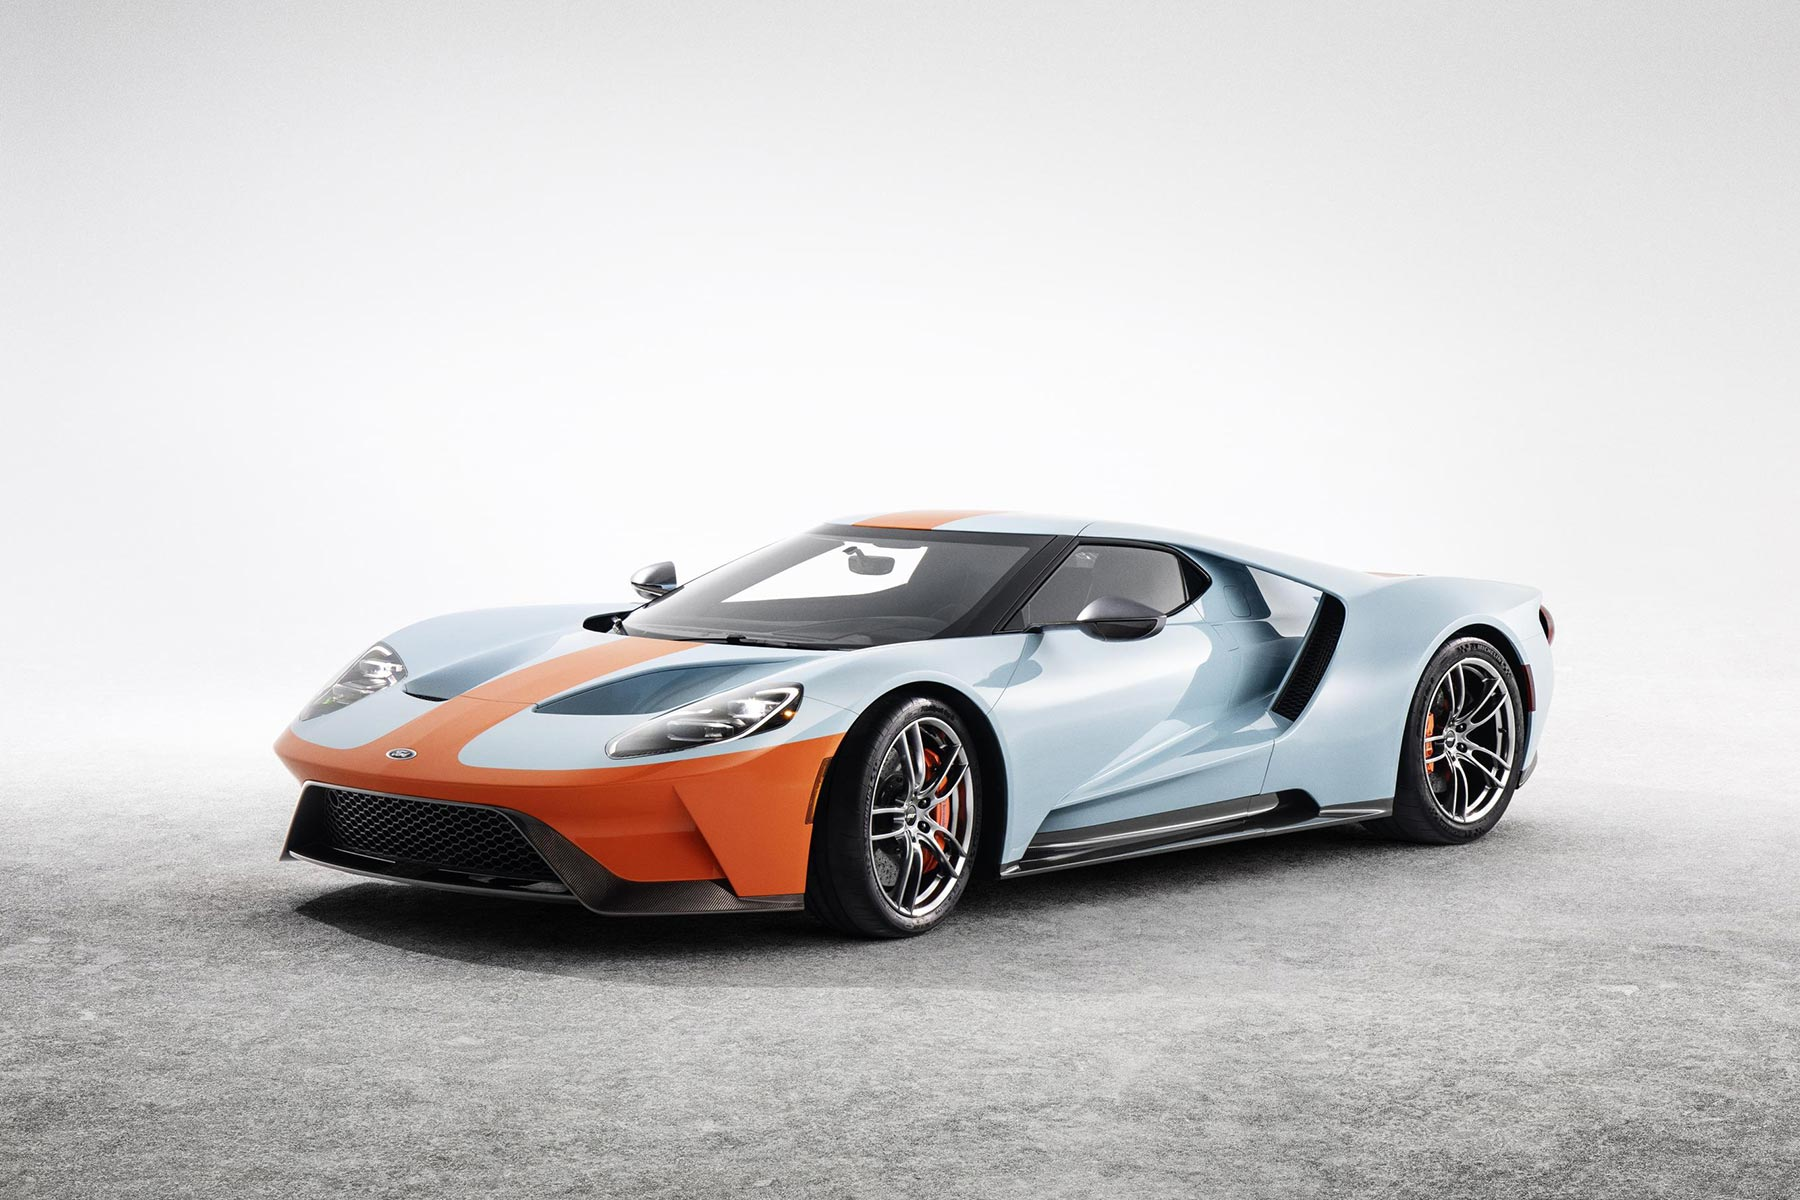 2019 Ford GT Heritage Edition brings back iconic Gulf Oil ...